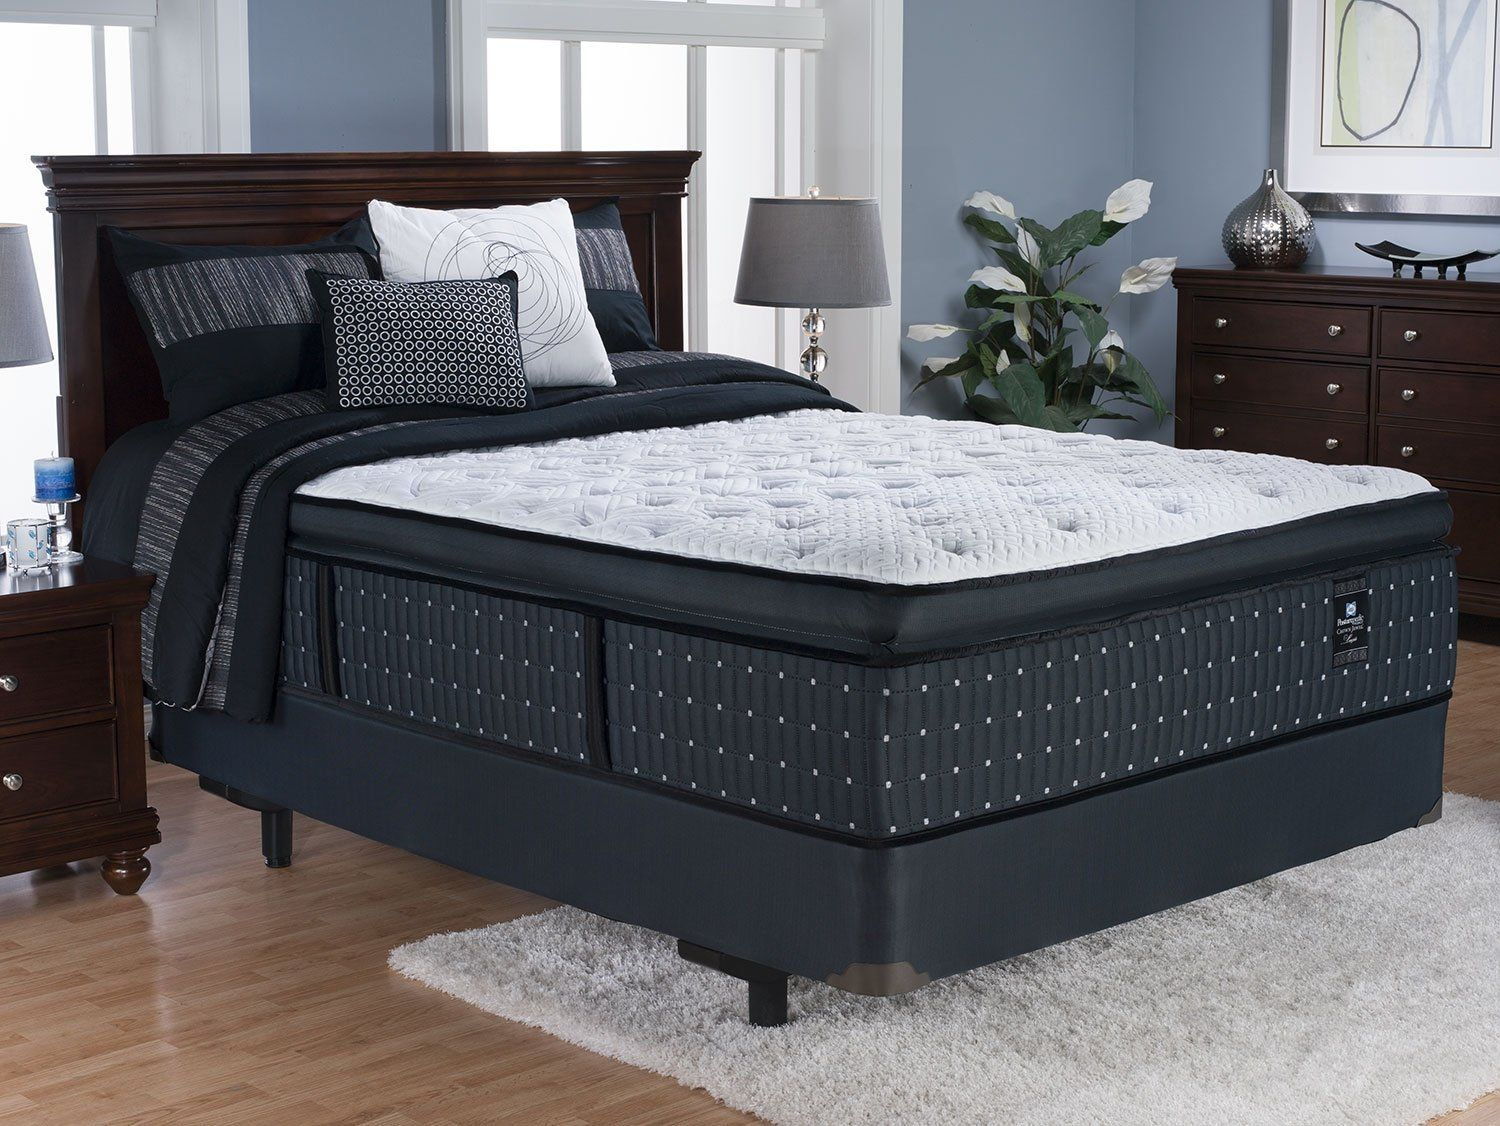 sealy posturepedic crown jewel mattress hand crafted luxury sealy